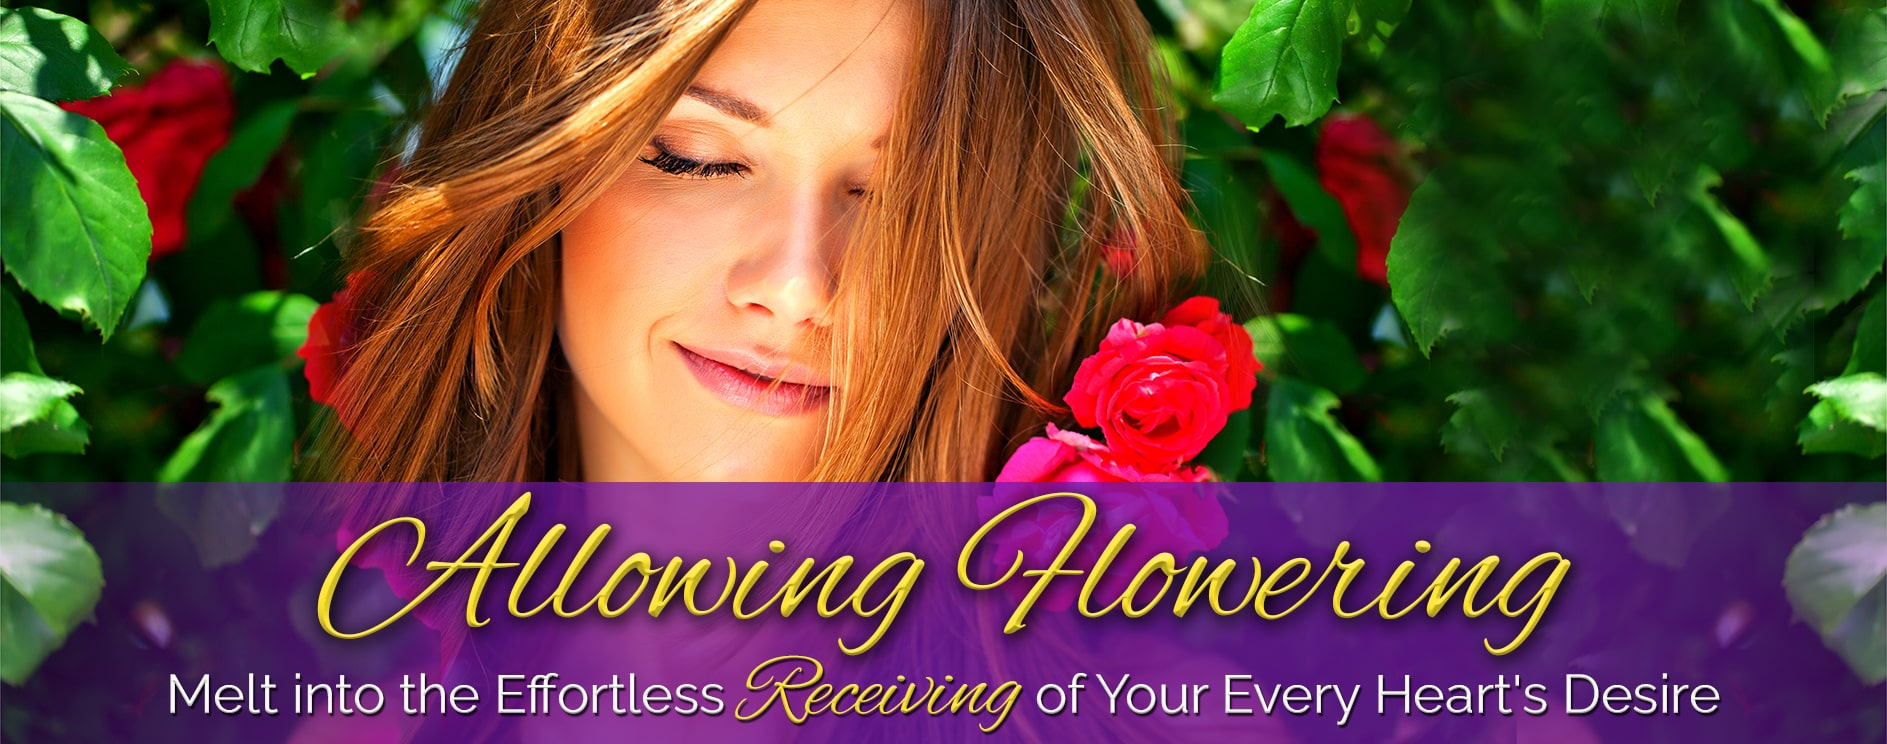 Melt Into the Effortless Receiving of Your Every Heart's Desire - Live The Art of Allowing Effortless Manifestation